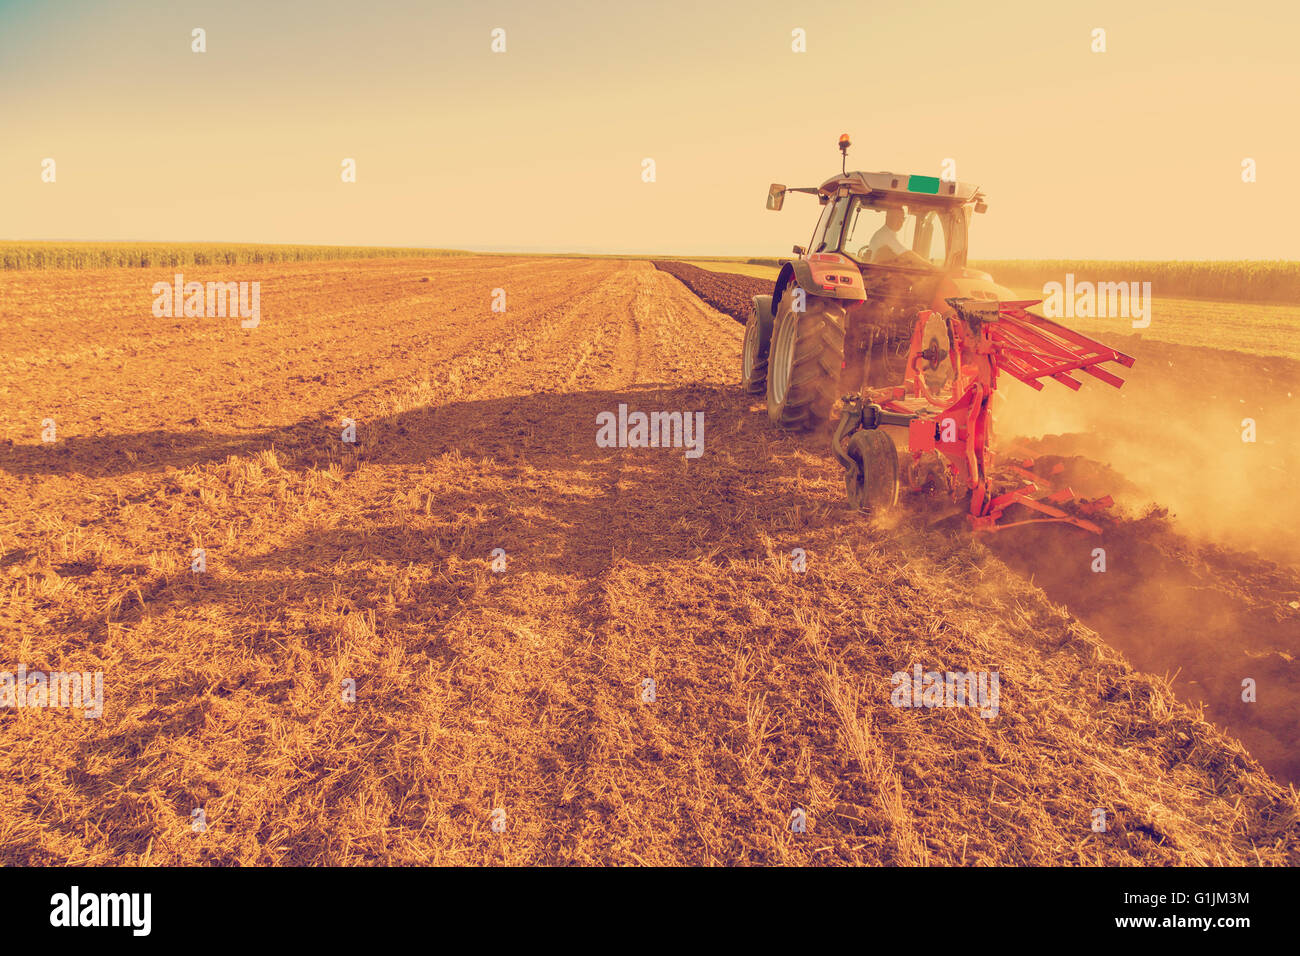 Farmer plowing stubble field with red tractor, photo manipulated to achieve old cross processing xpro look. - Stock Image